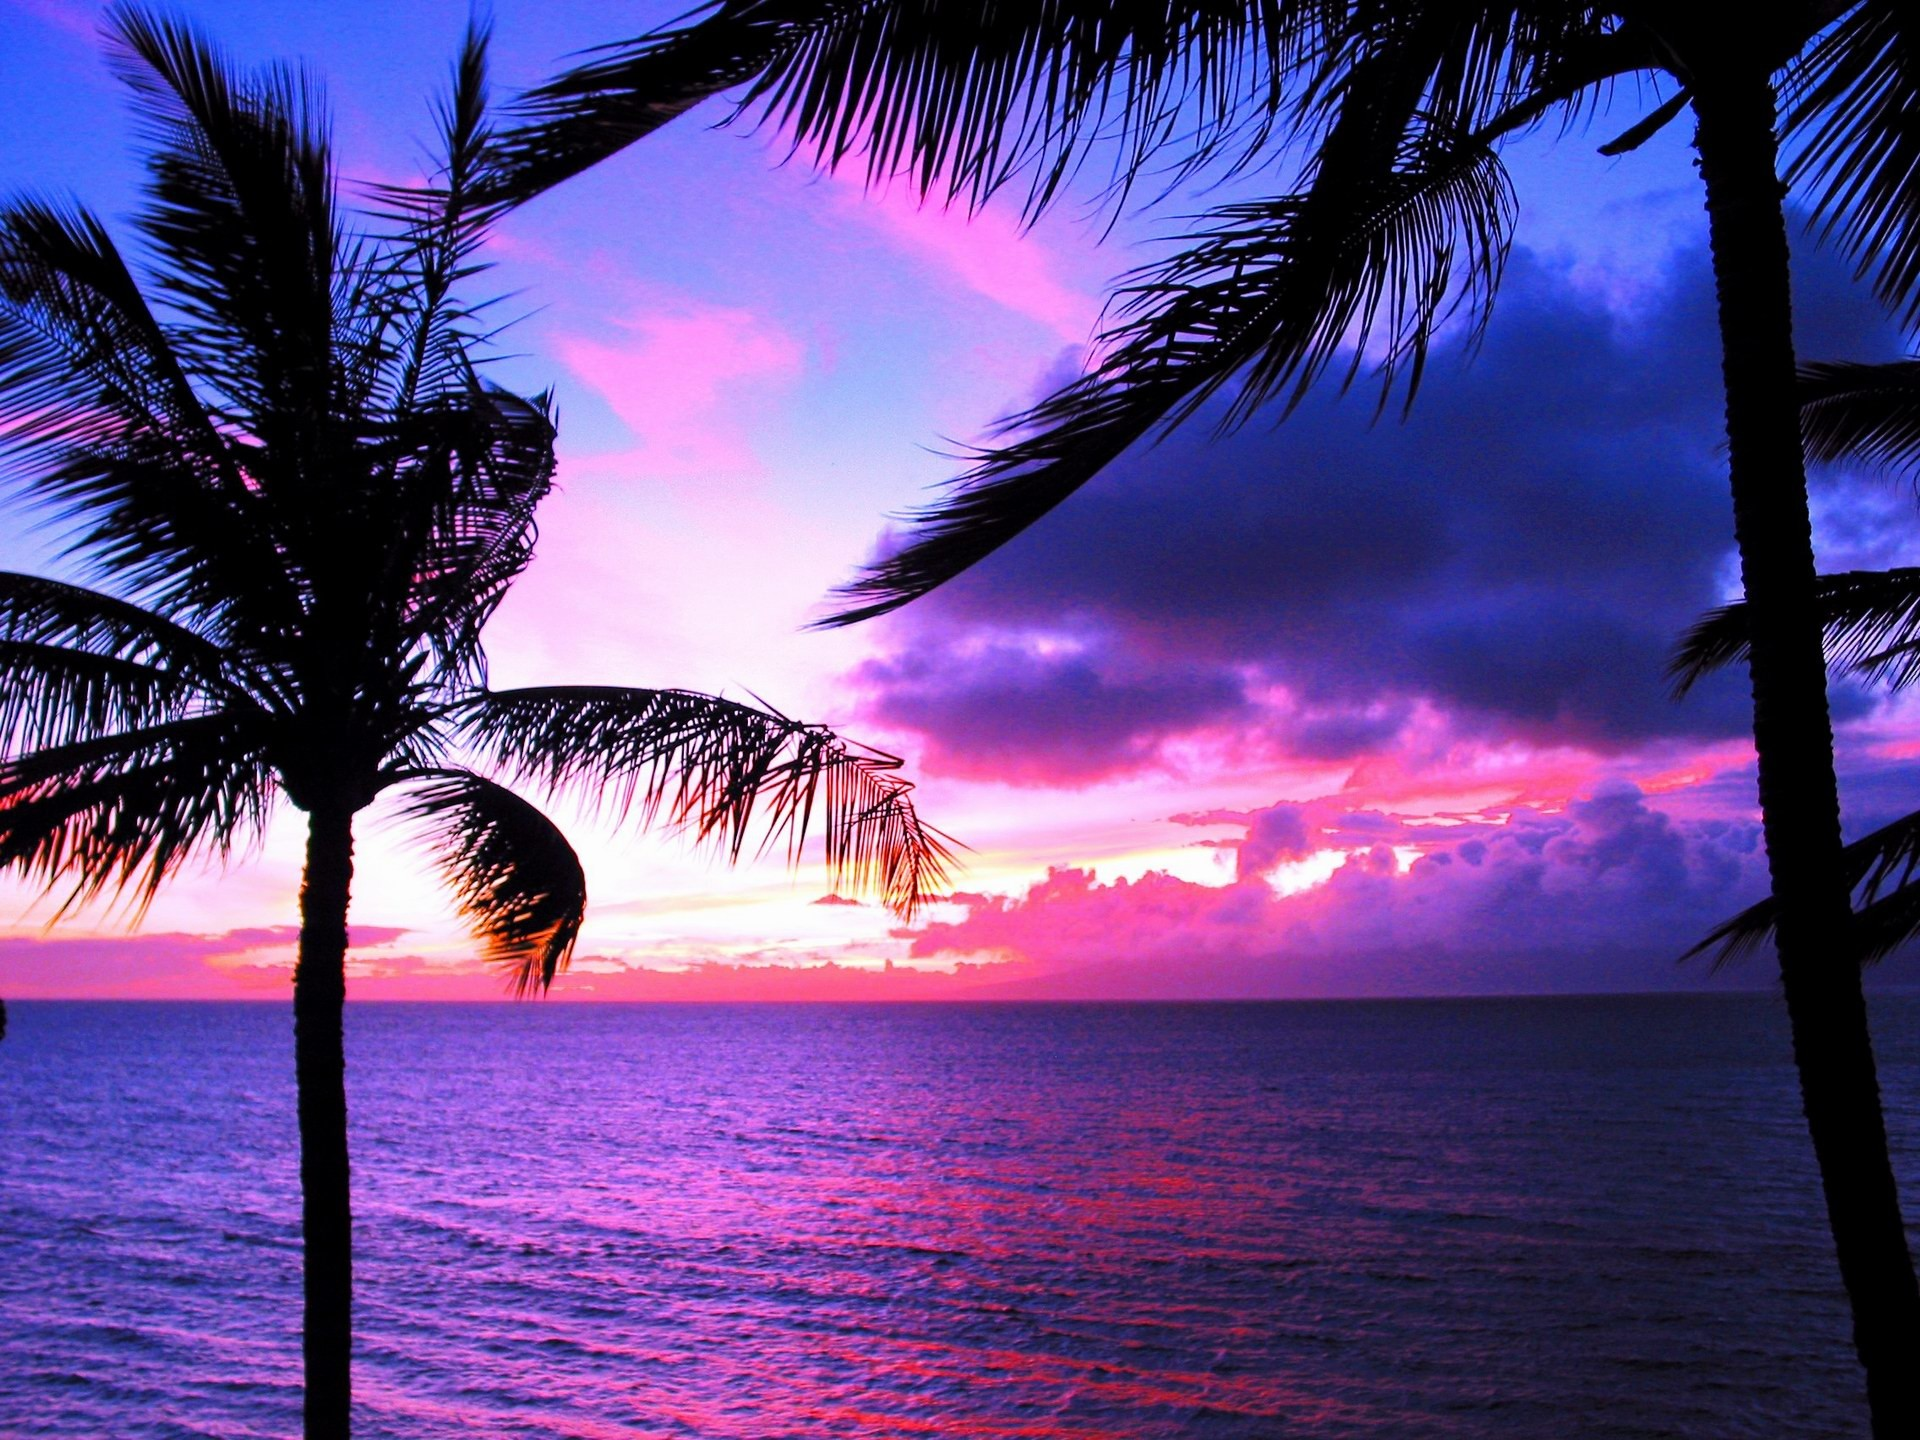 1920x1440 Hawaii Sunset Desktop Wallpaper 16294 Full HD Wallpaper Desktop .